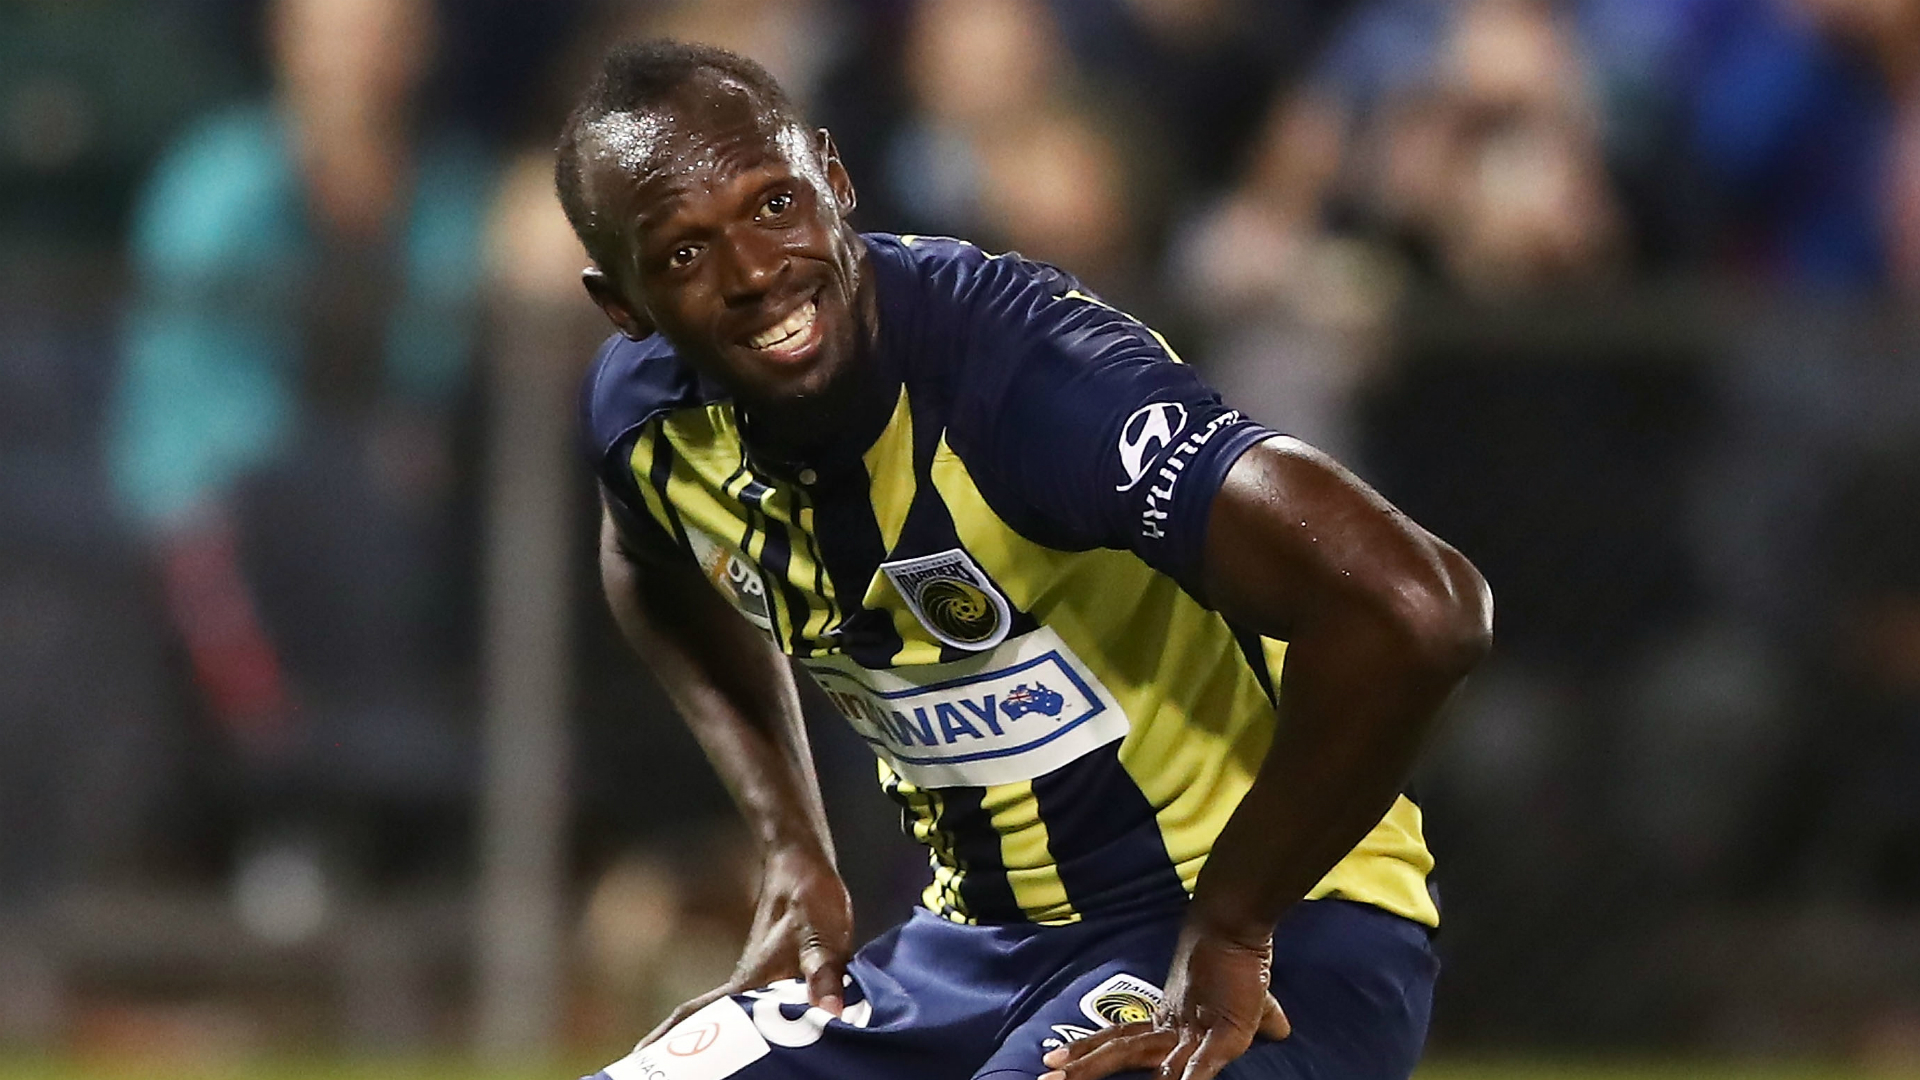 Usain Bolt offered two year contract with Champions League-chasing side agent